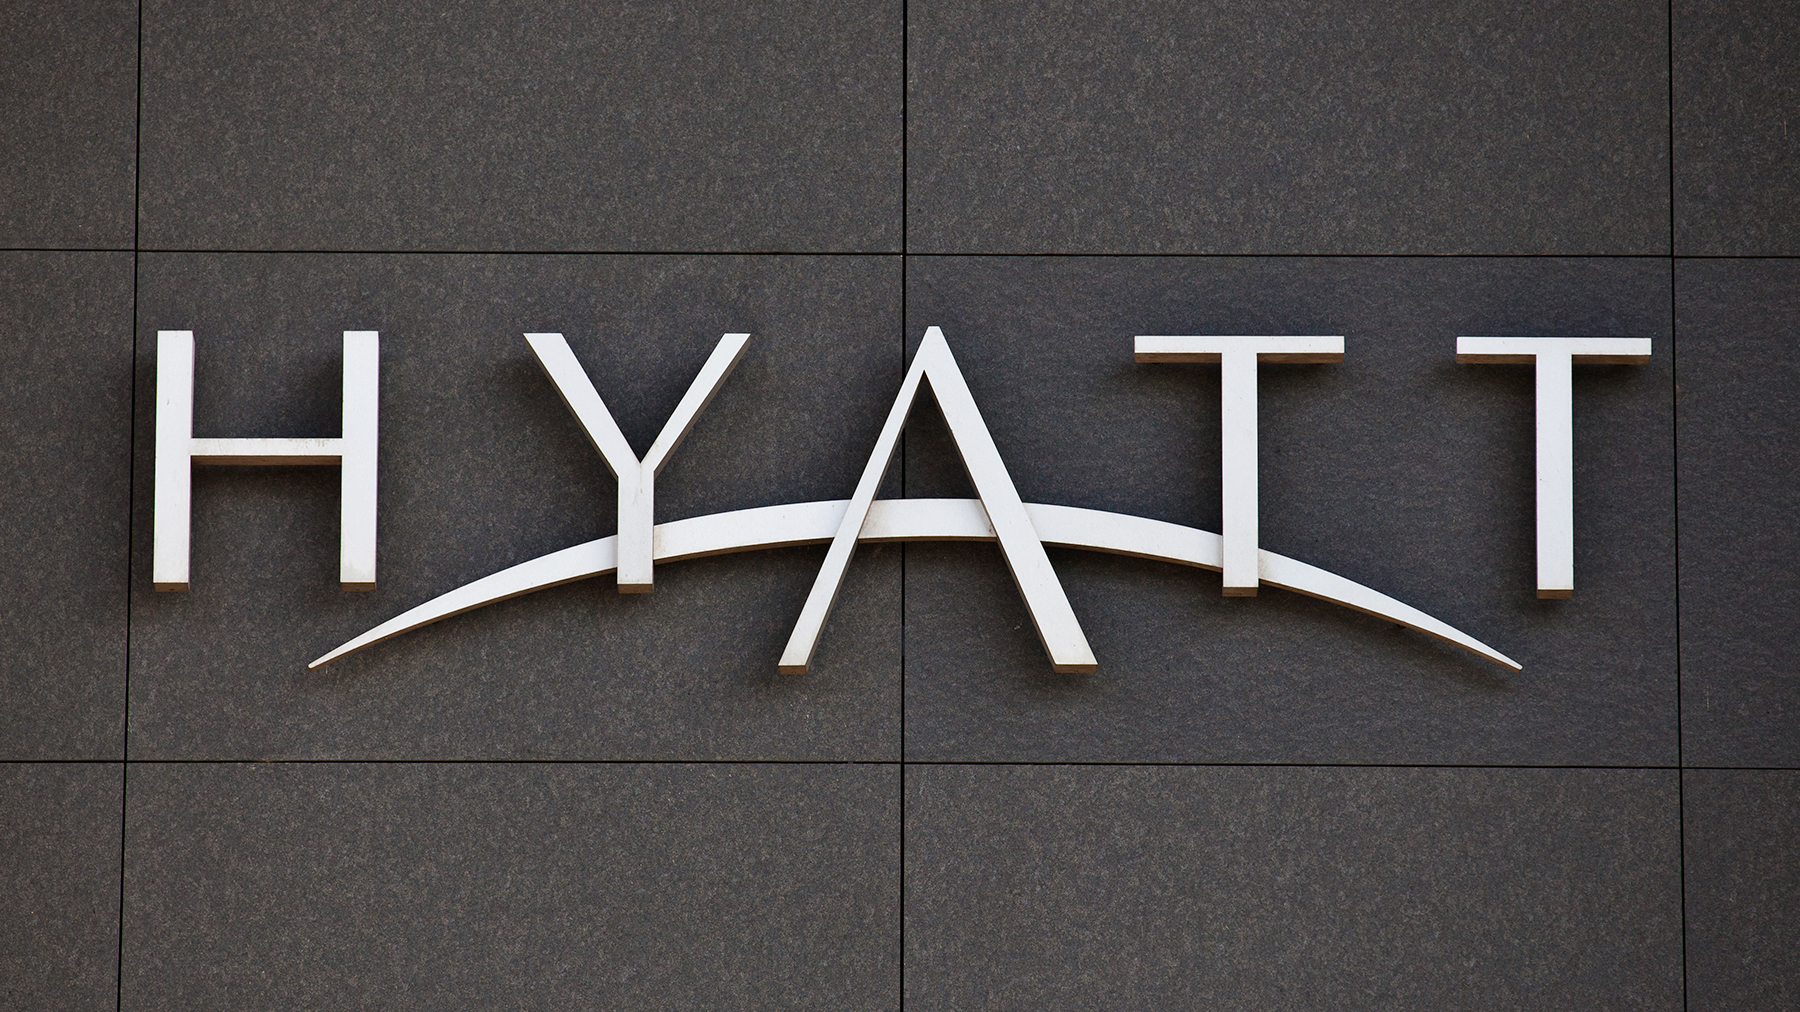 Hyatt Hotels Announces Ban On Hate Groups Following Anti Muslim